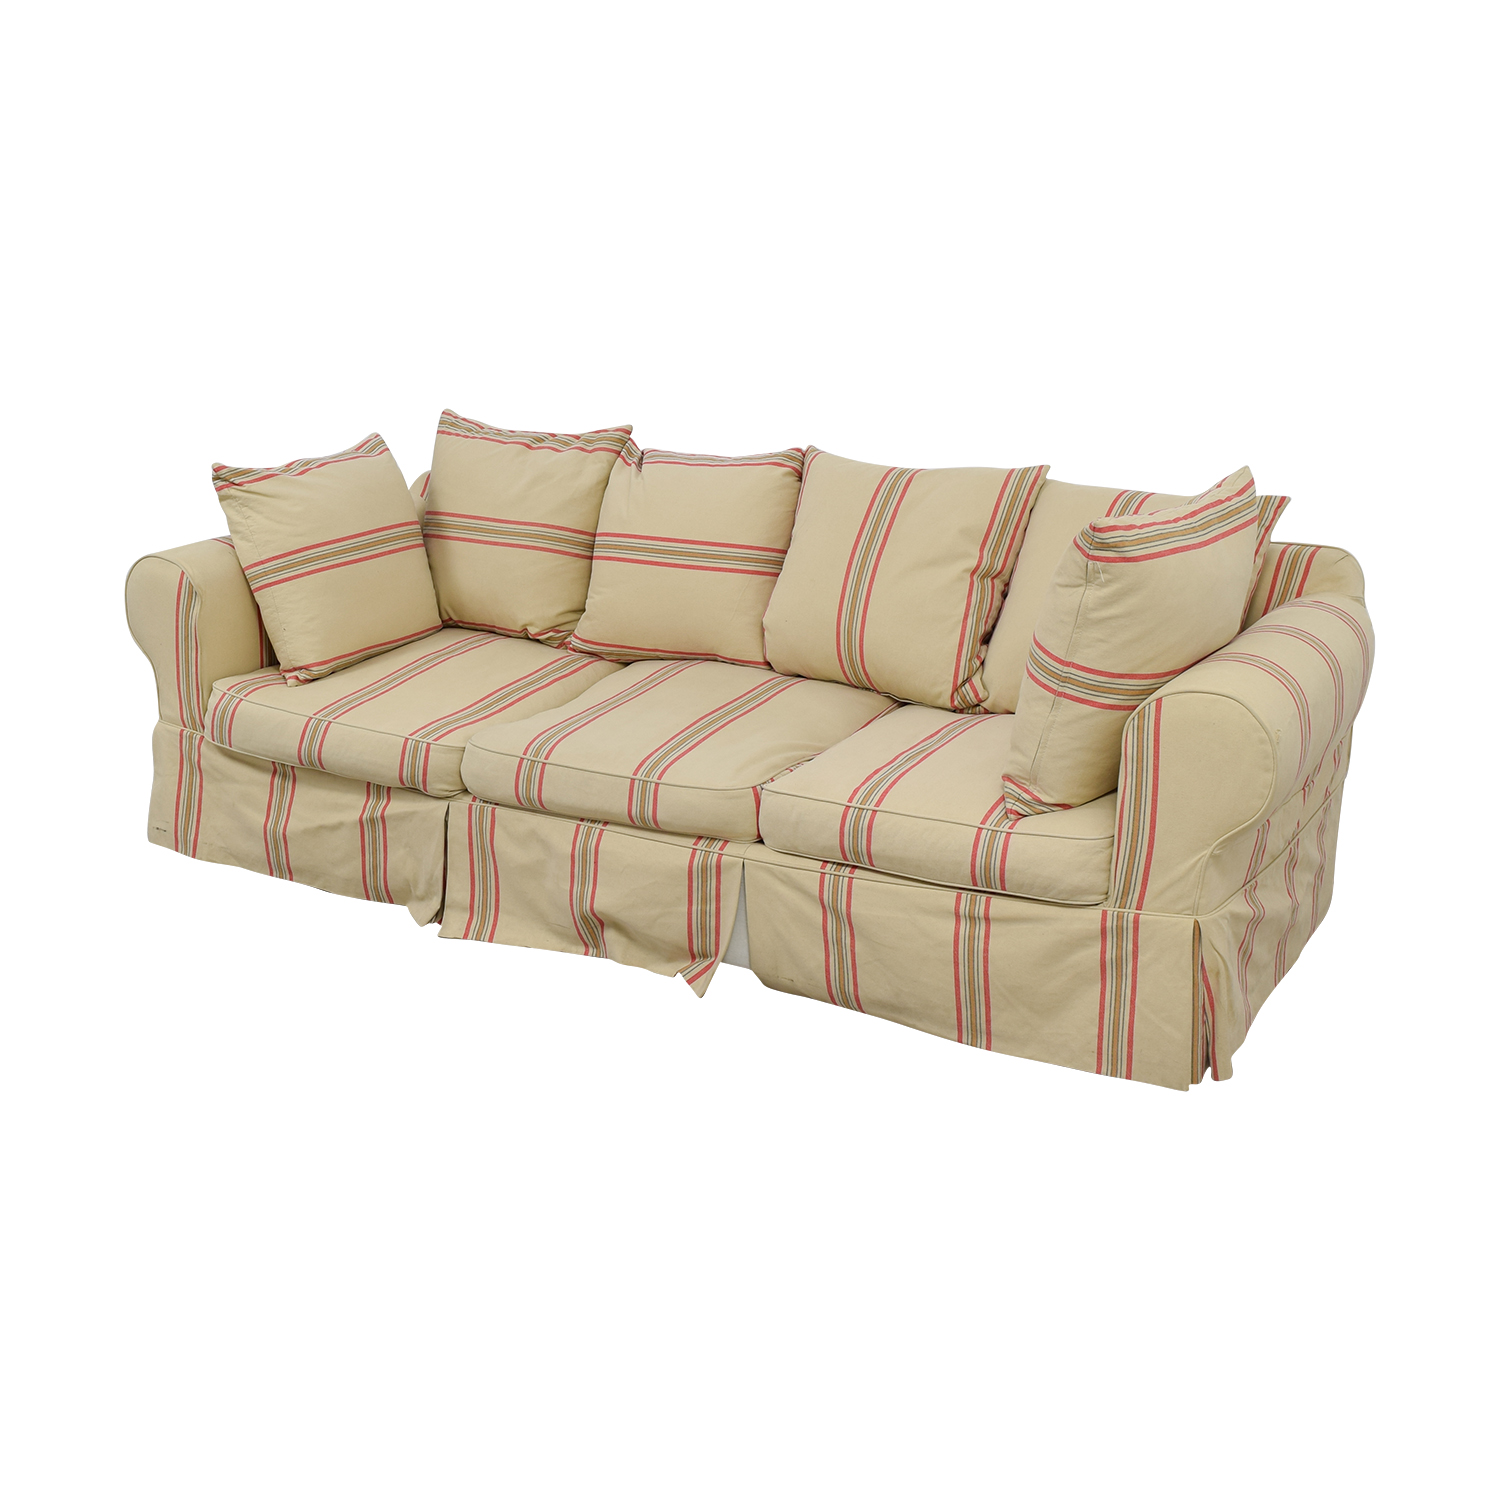 second hand chair covers for sale motorized recliner 90 off beige with red stripe three cushion slipcover